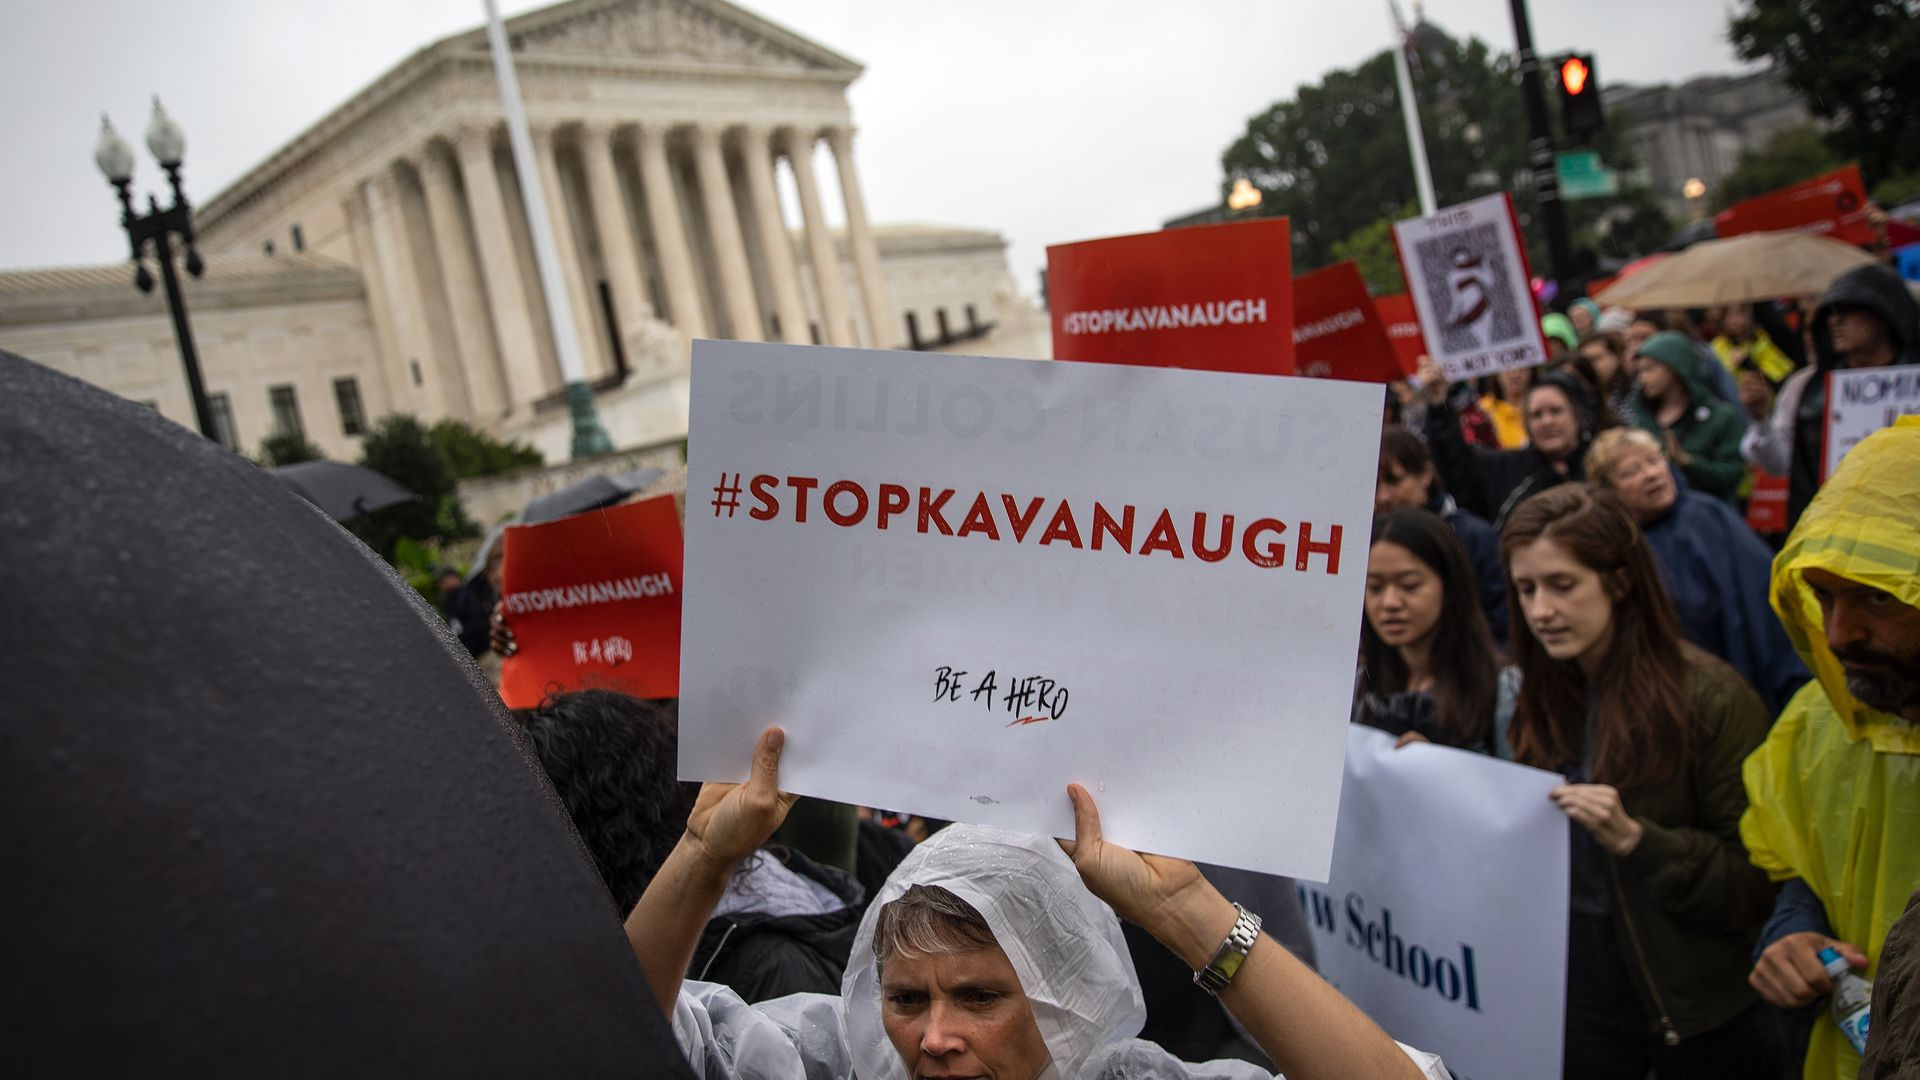 Anti-Kavanaugh protesters outside the Supreme Court